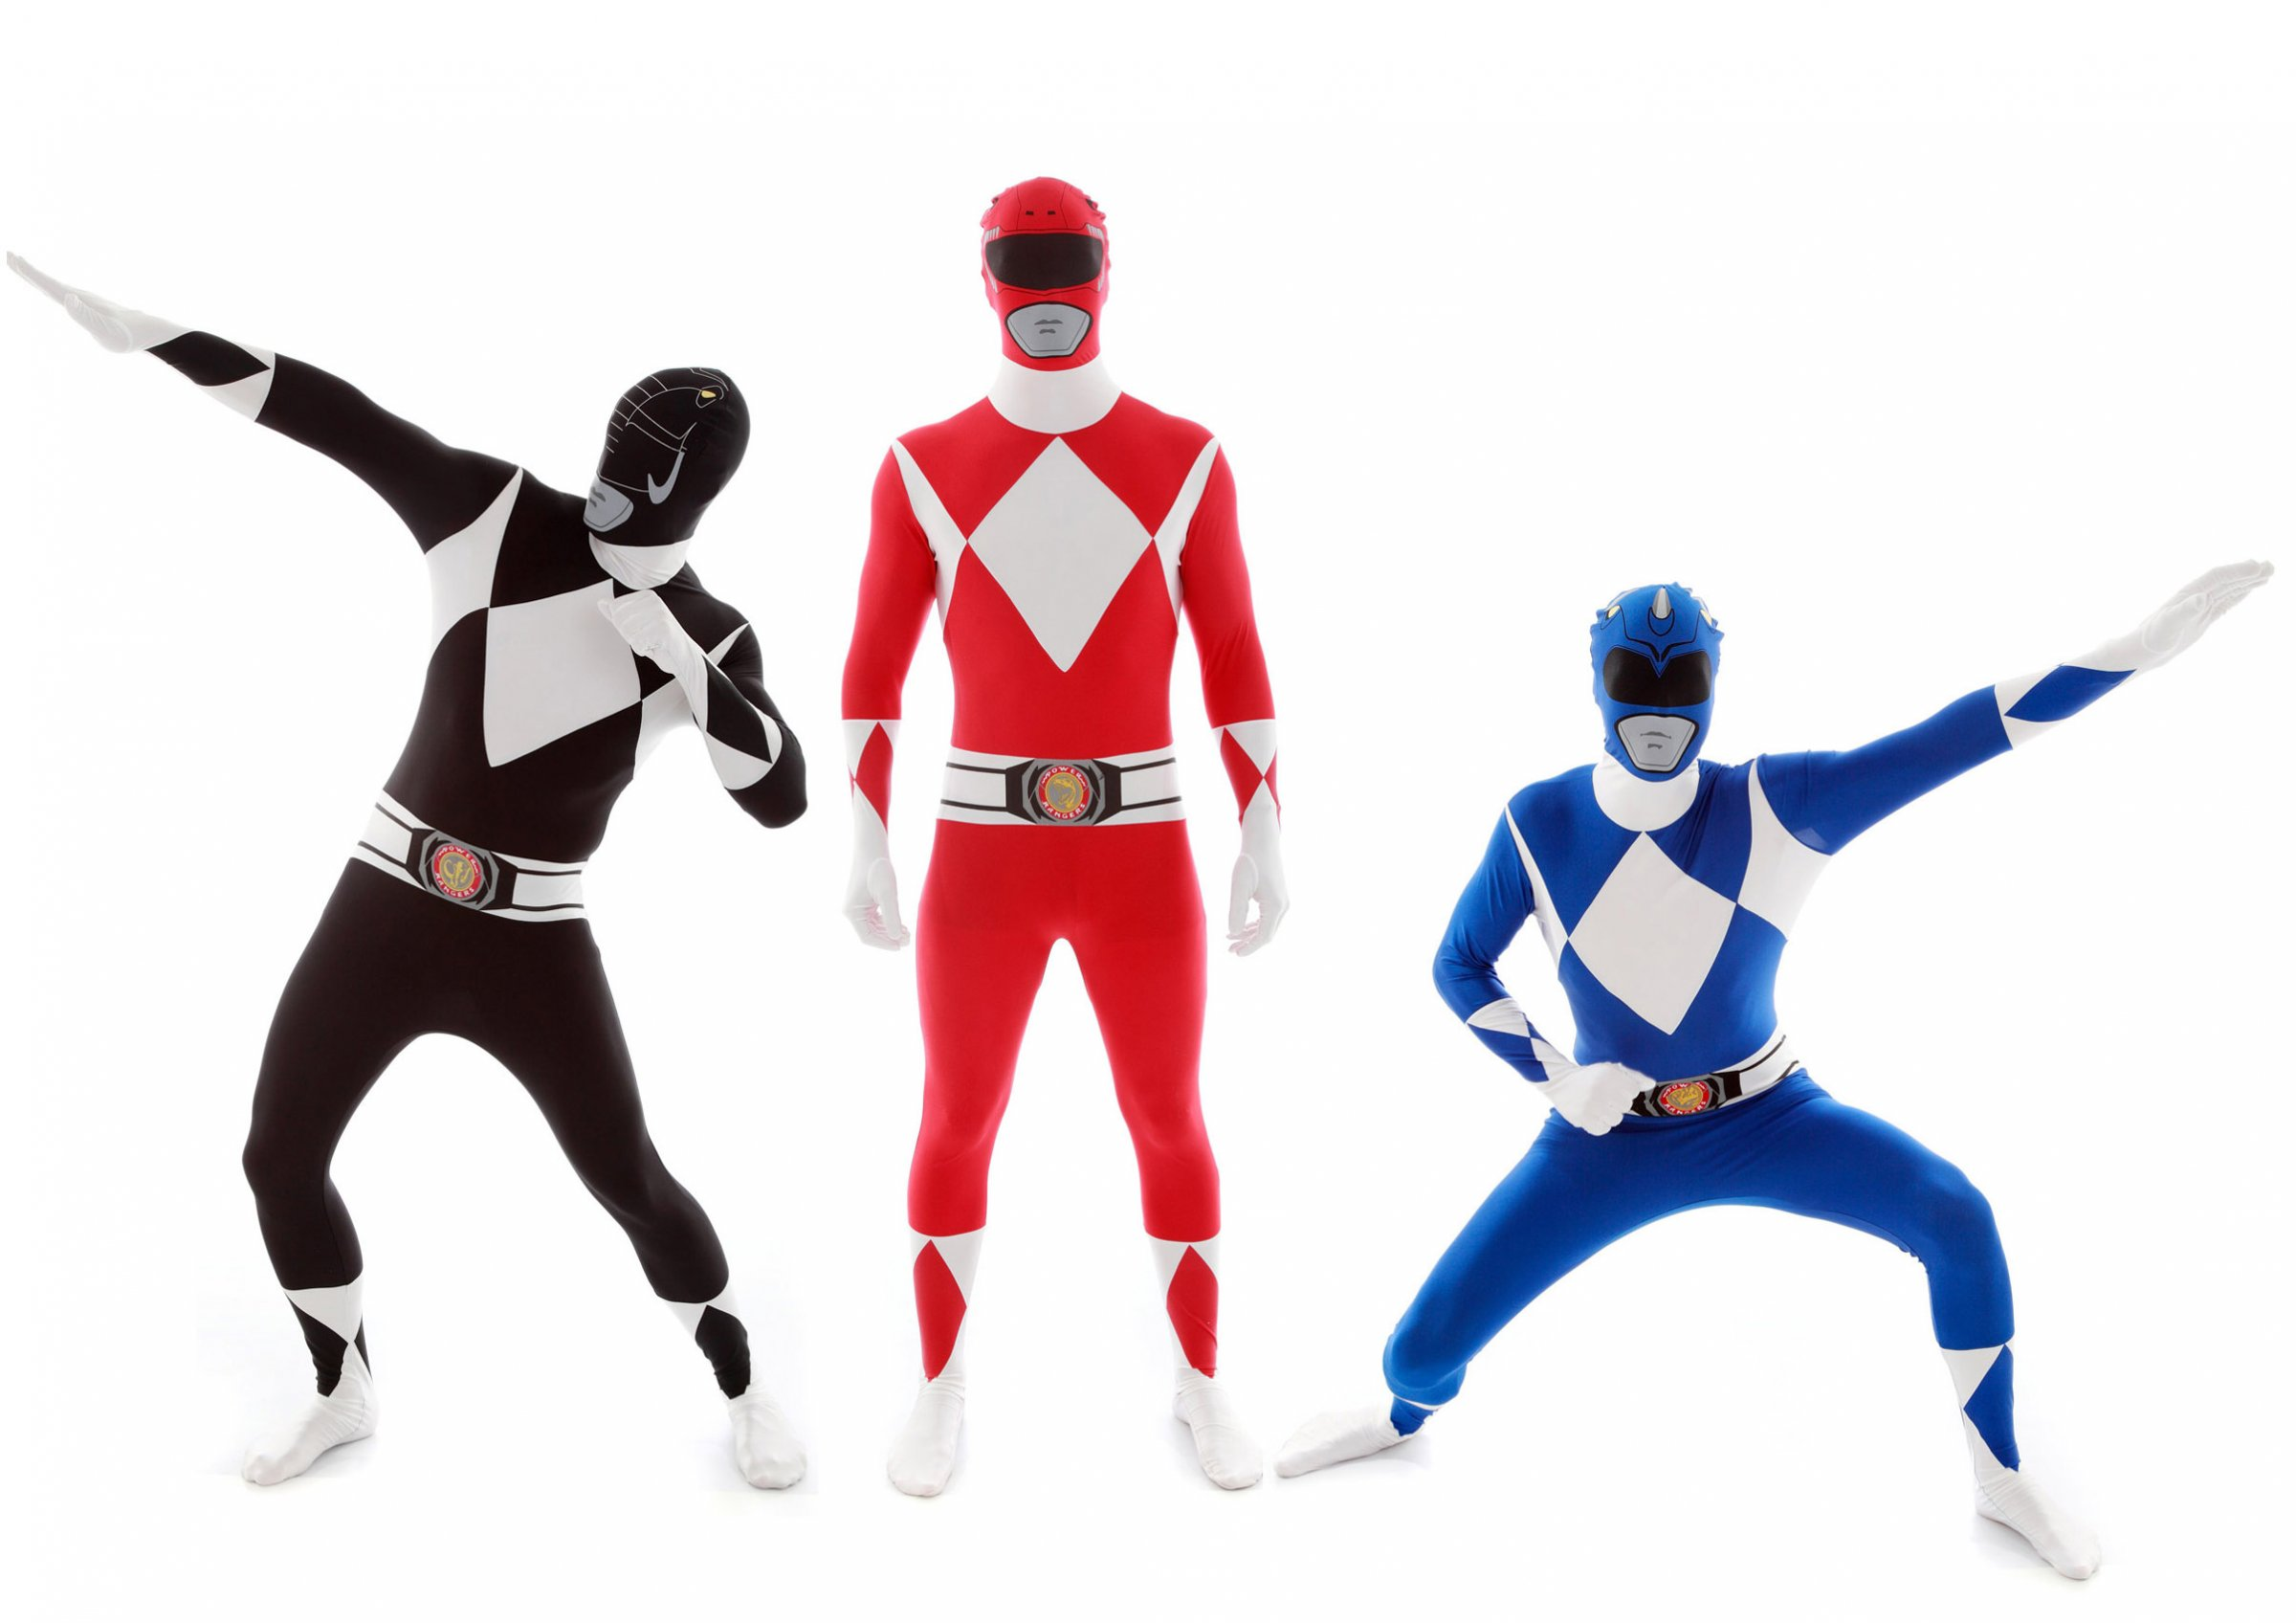 d guisement de groupe morphsuits power rangers deguise toi achat de d guisements couples. Black Bedroom Furniture Sets. Home Design Ideas